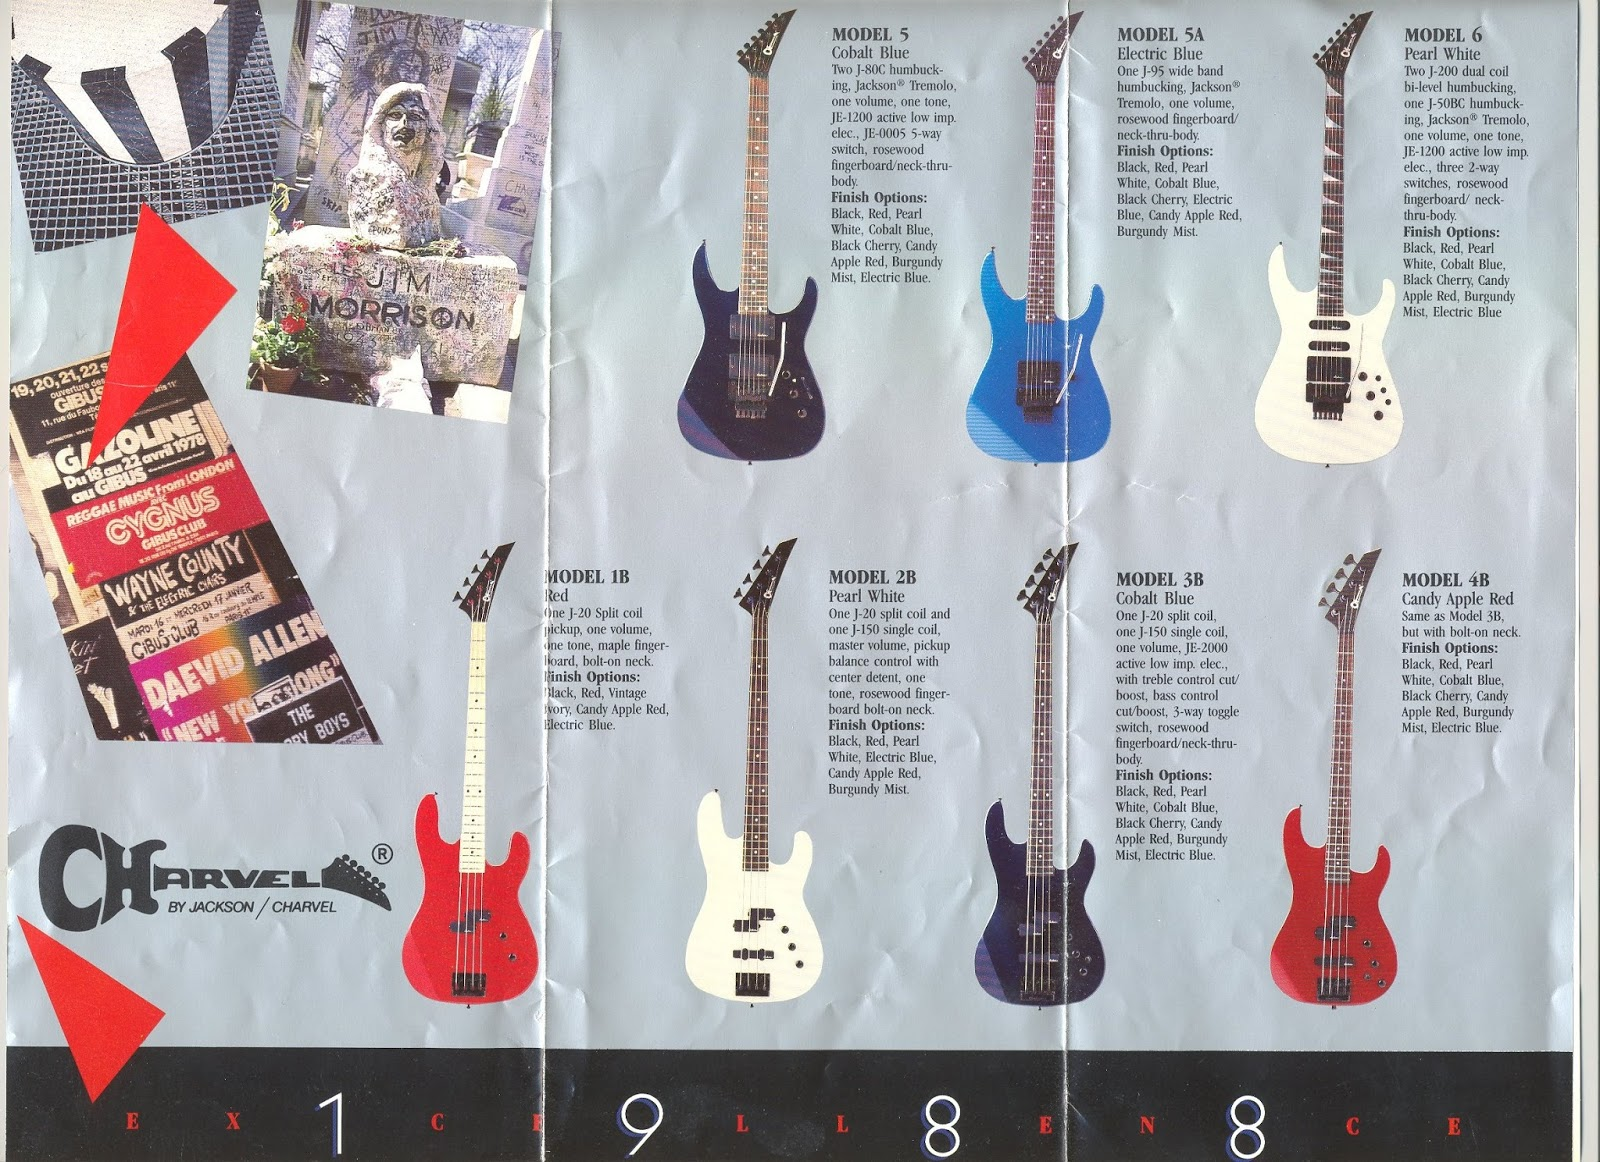 Wiring Diagram For Charvel Jackson Reveolution Of 2 Vol 1 Tone Model 4 Free Download U2022 Oasis Dl Co Rh